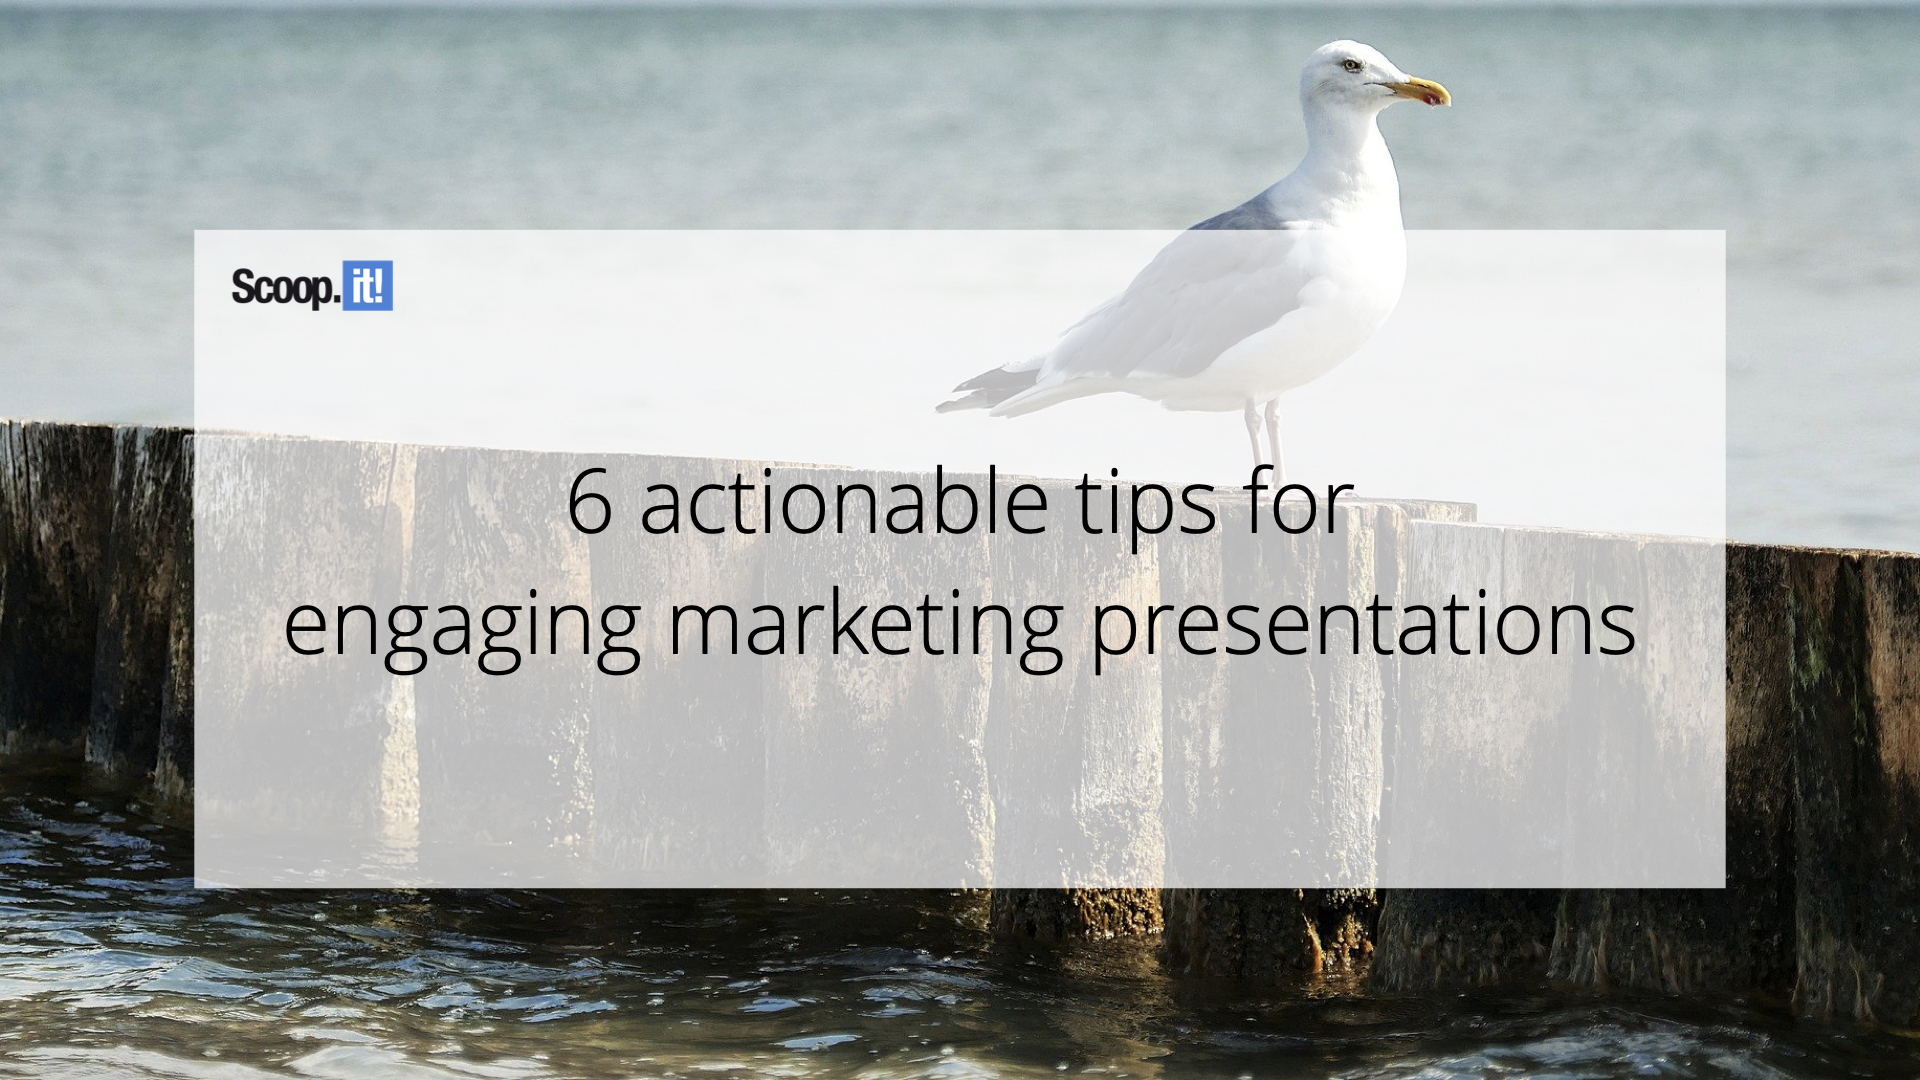 6 Actionable Tips for Engaging Marketing Presentations